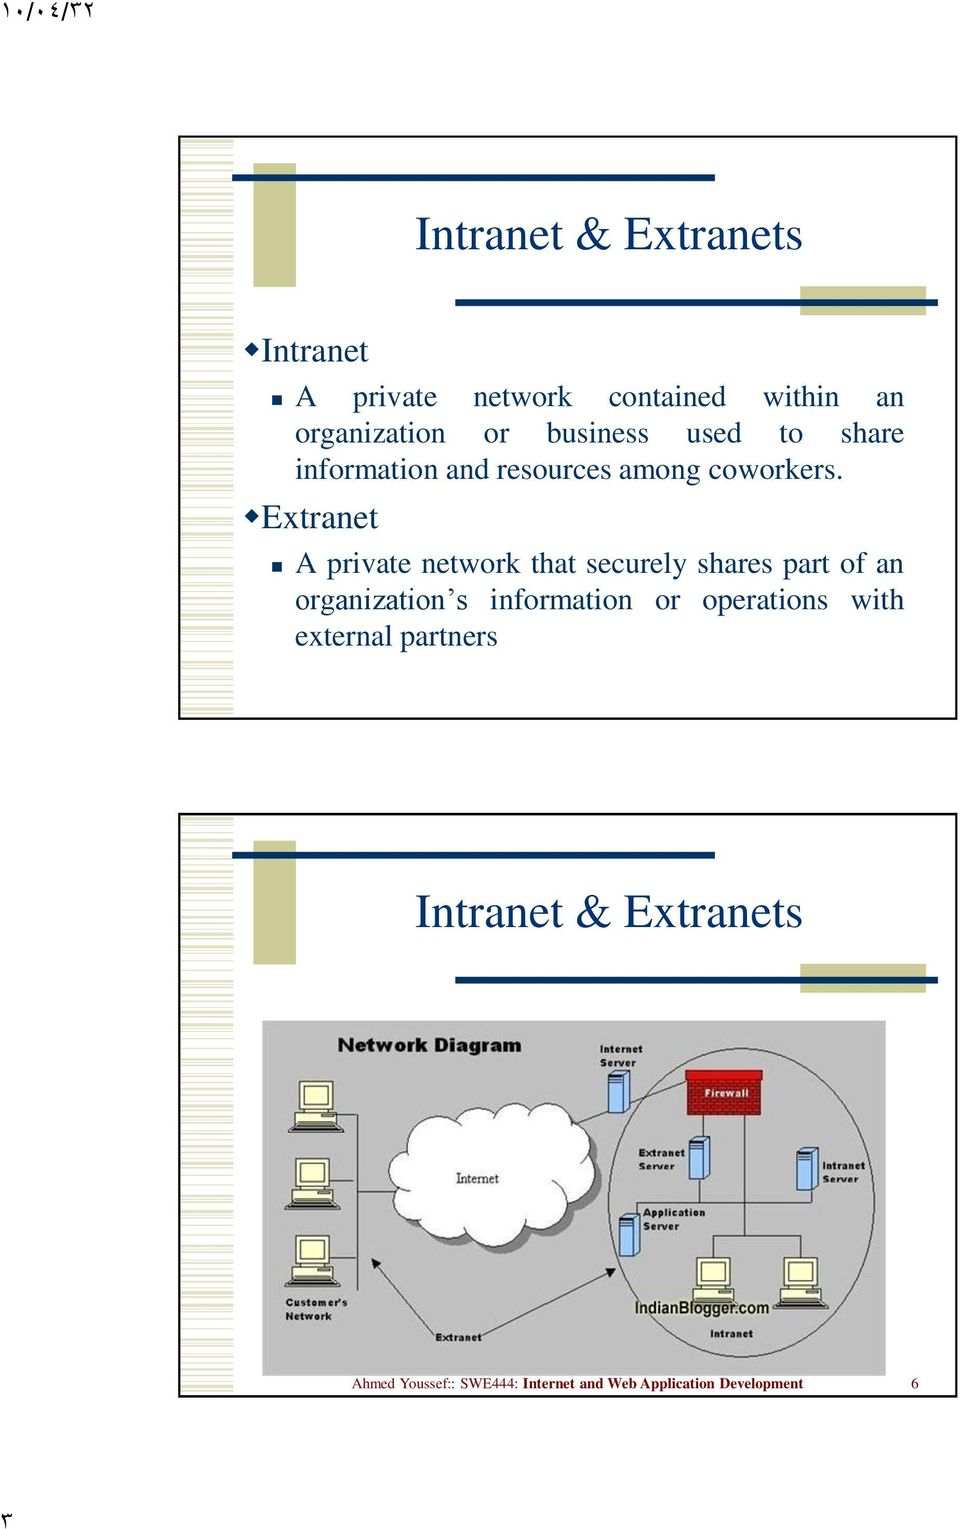 Extranet A private network that securely shares part of an organization s information or